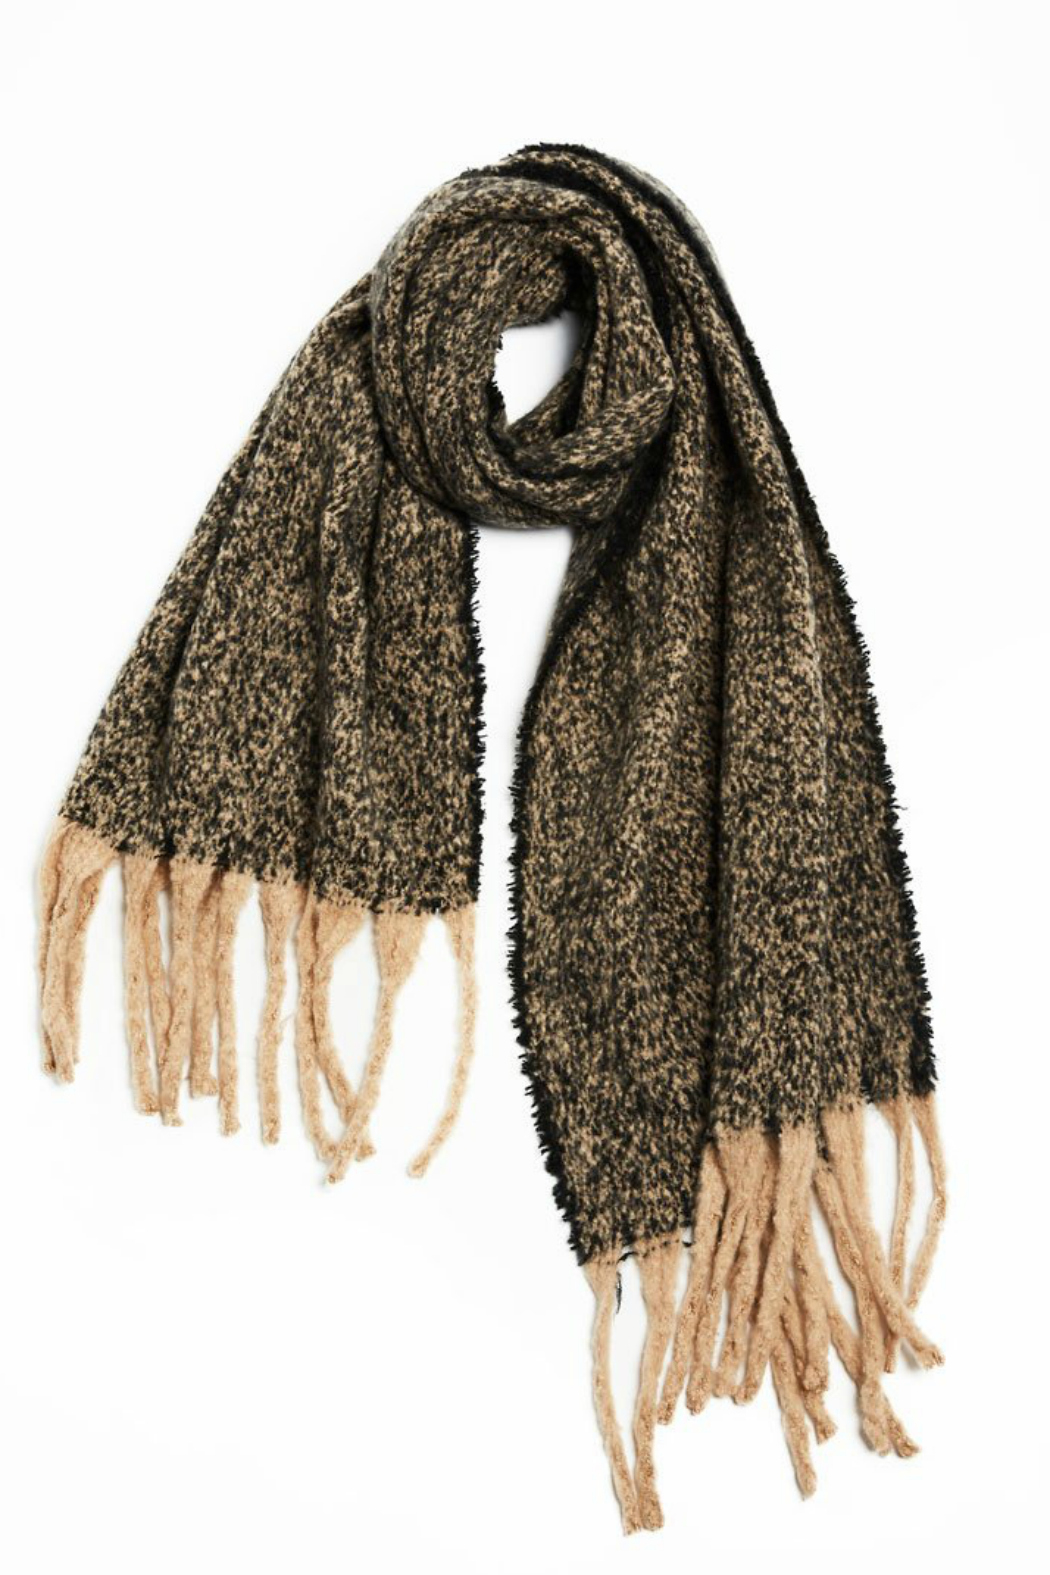 Look by M Nubby contrast fringe scarf - Main Image